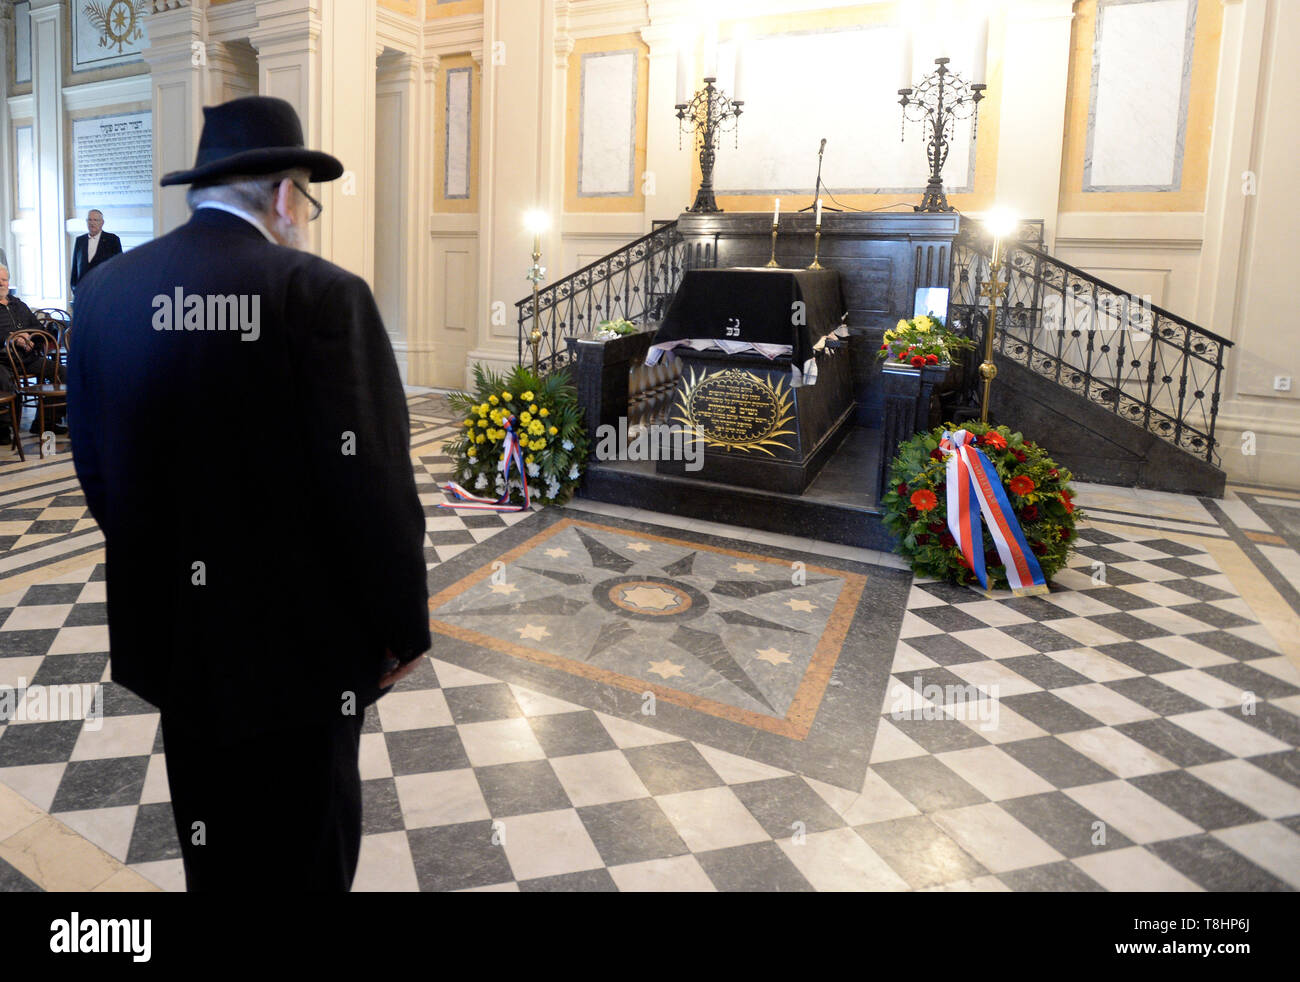 Prague, Czech Republic. 13th May, 2019. The chairman of the Prague Jewish Community and long-standing director of the Terezin (Theresienstadt) Memorial, Jan Munk, died at the age of 72 after a long disease. Chief Rabbi of the city of Prague and of the Czech Republic Karol Efraim Sidon (pictured) attends the funeral of Jan Munk at the New Jewish Cemetery in Prague, Czech Republic, May 13, 2019. Credit: Katerina Sulova/CTK Photo/Alamy Live News Stock Photo